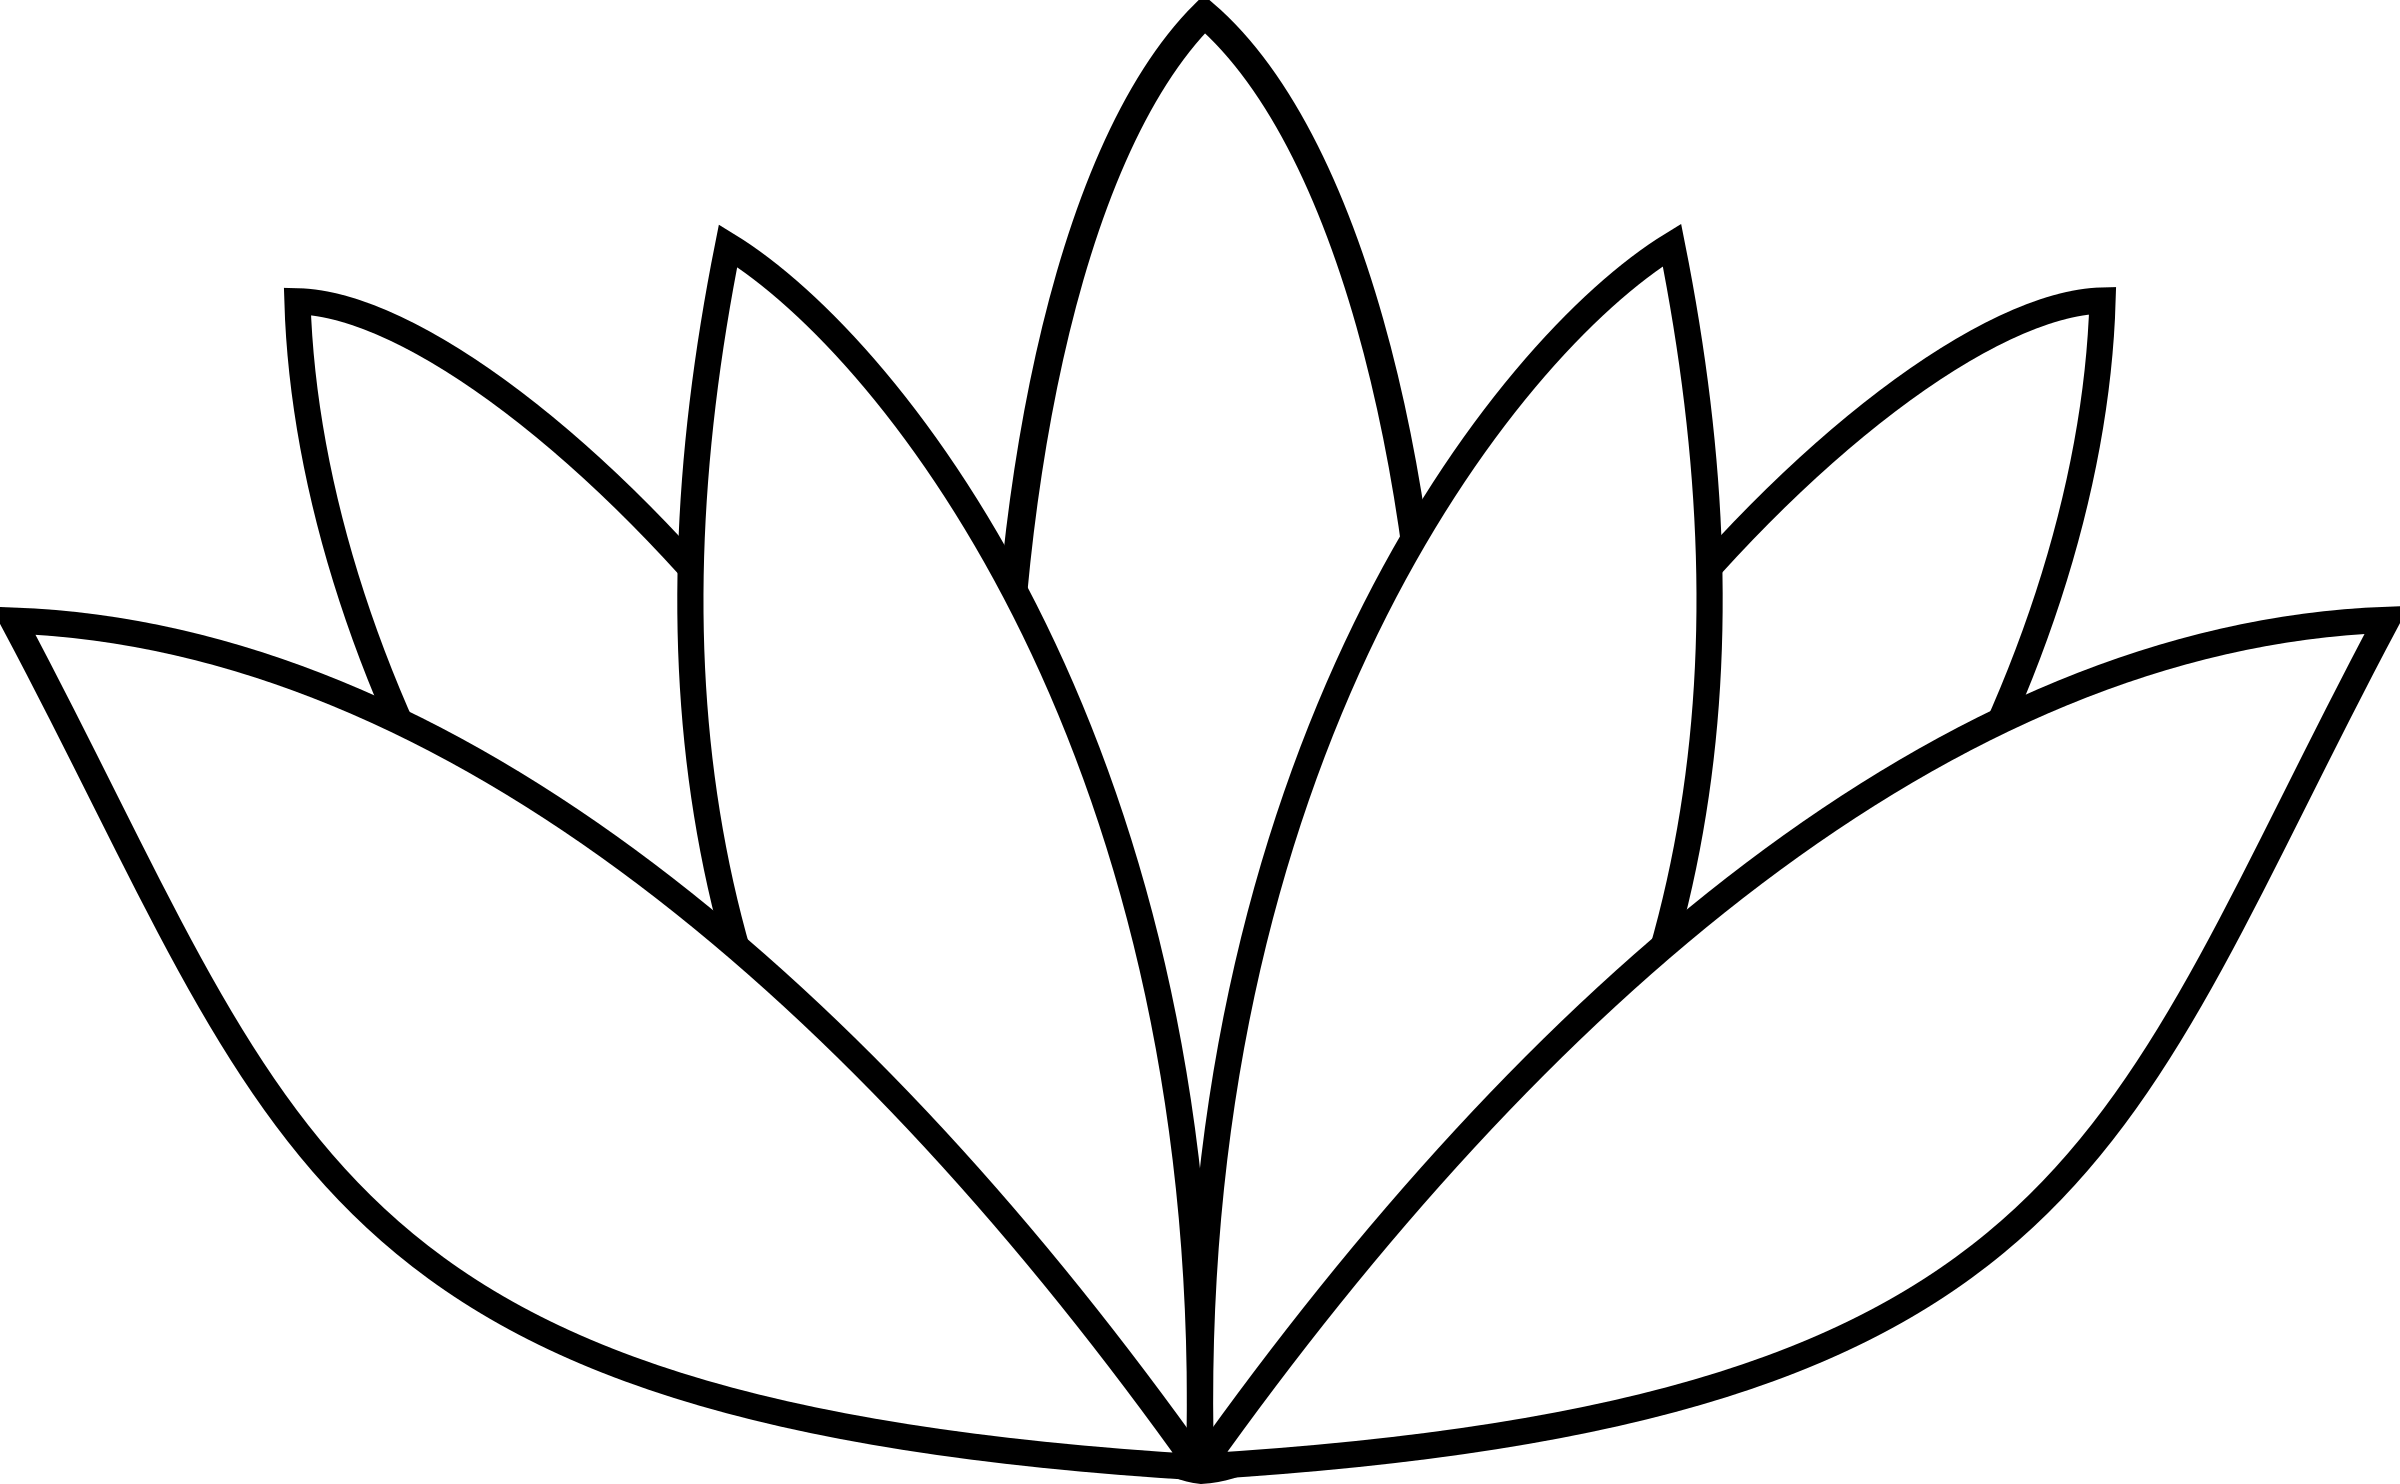 Lotus Flower Black And White PNG - 87940